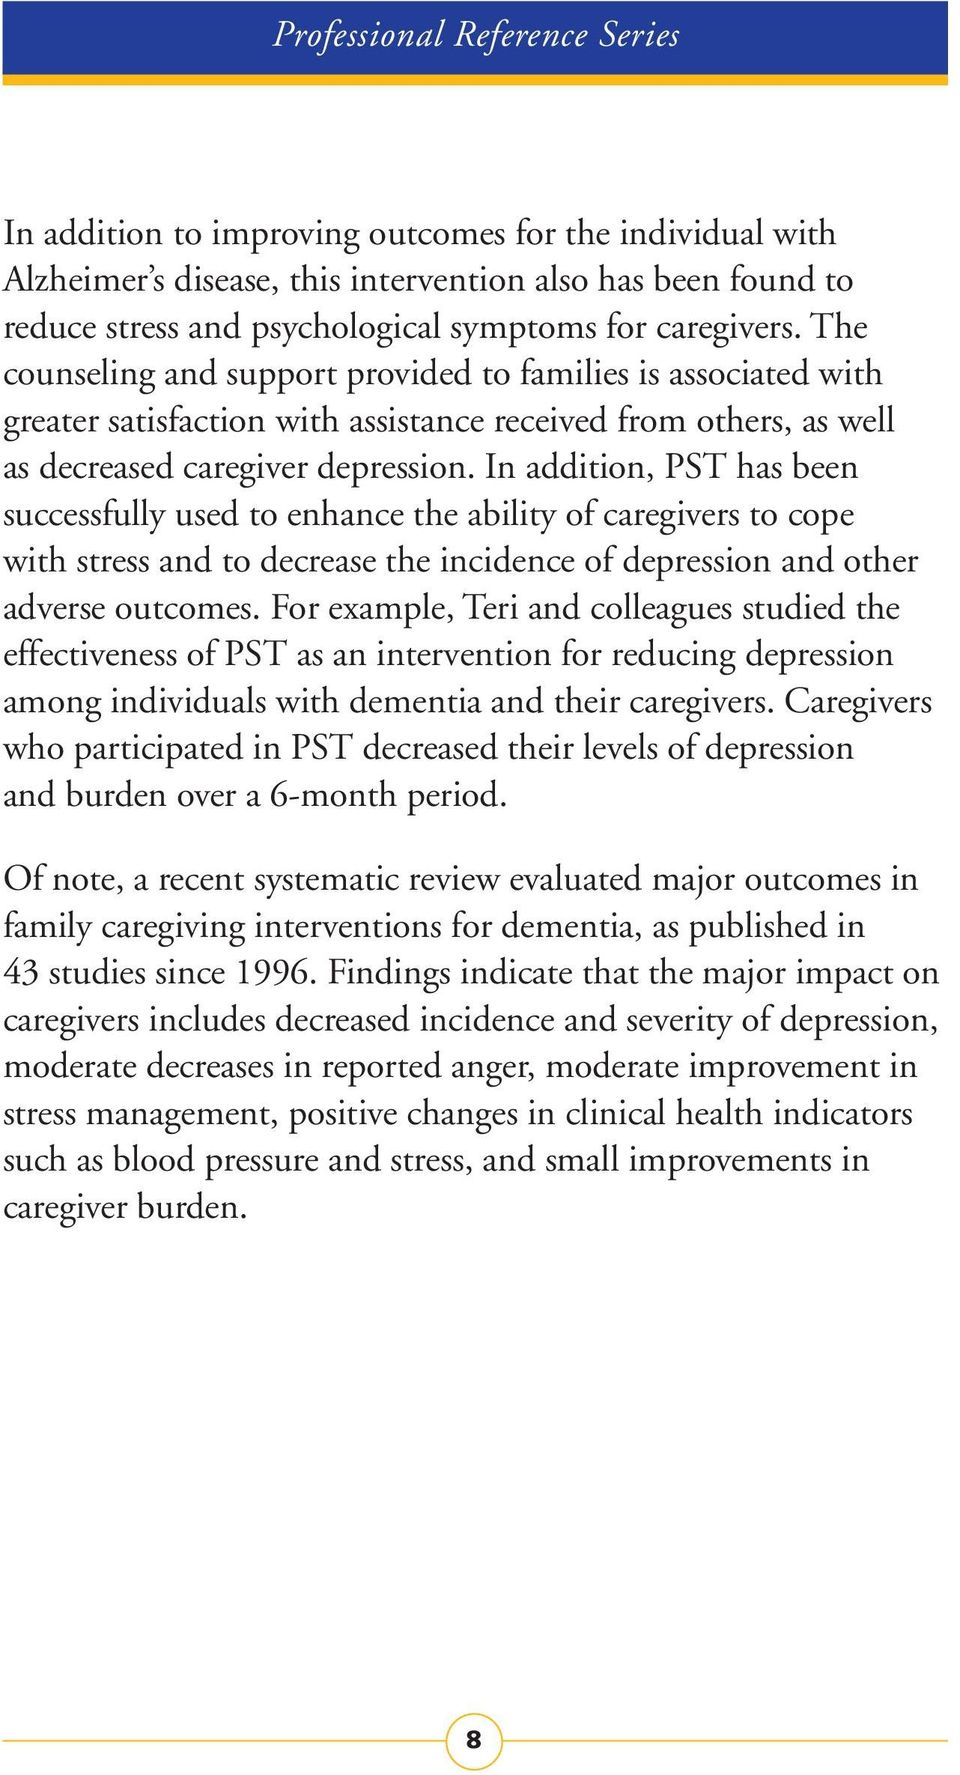 In addition, PST has been successfully used to enhance the ability of caregivers to cope with stress and to decrease the incidence of depression and other adverse outcomes.